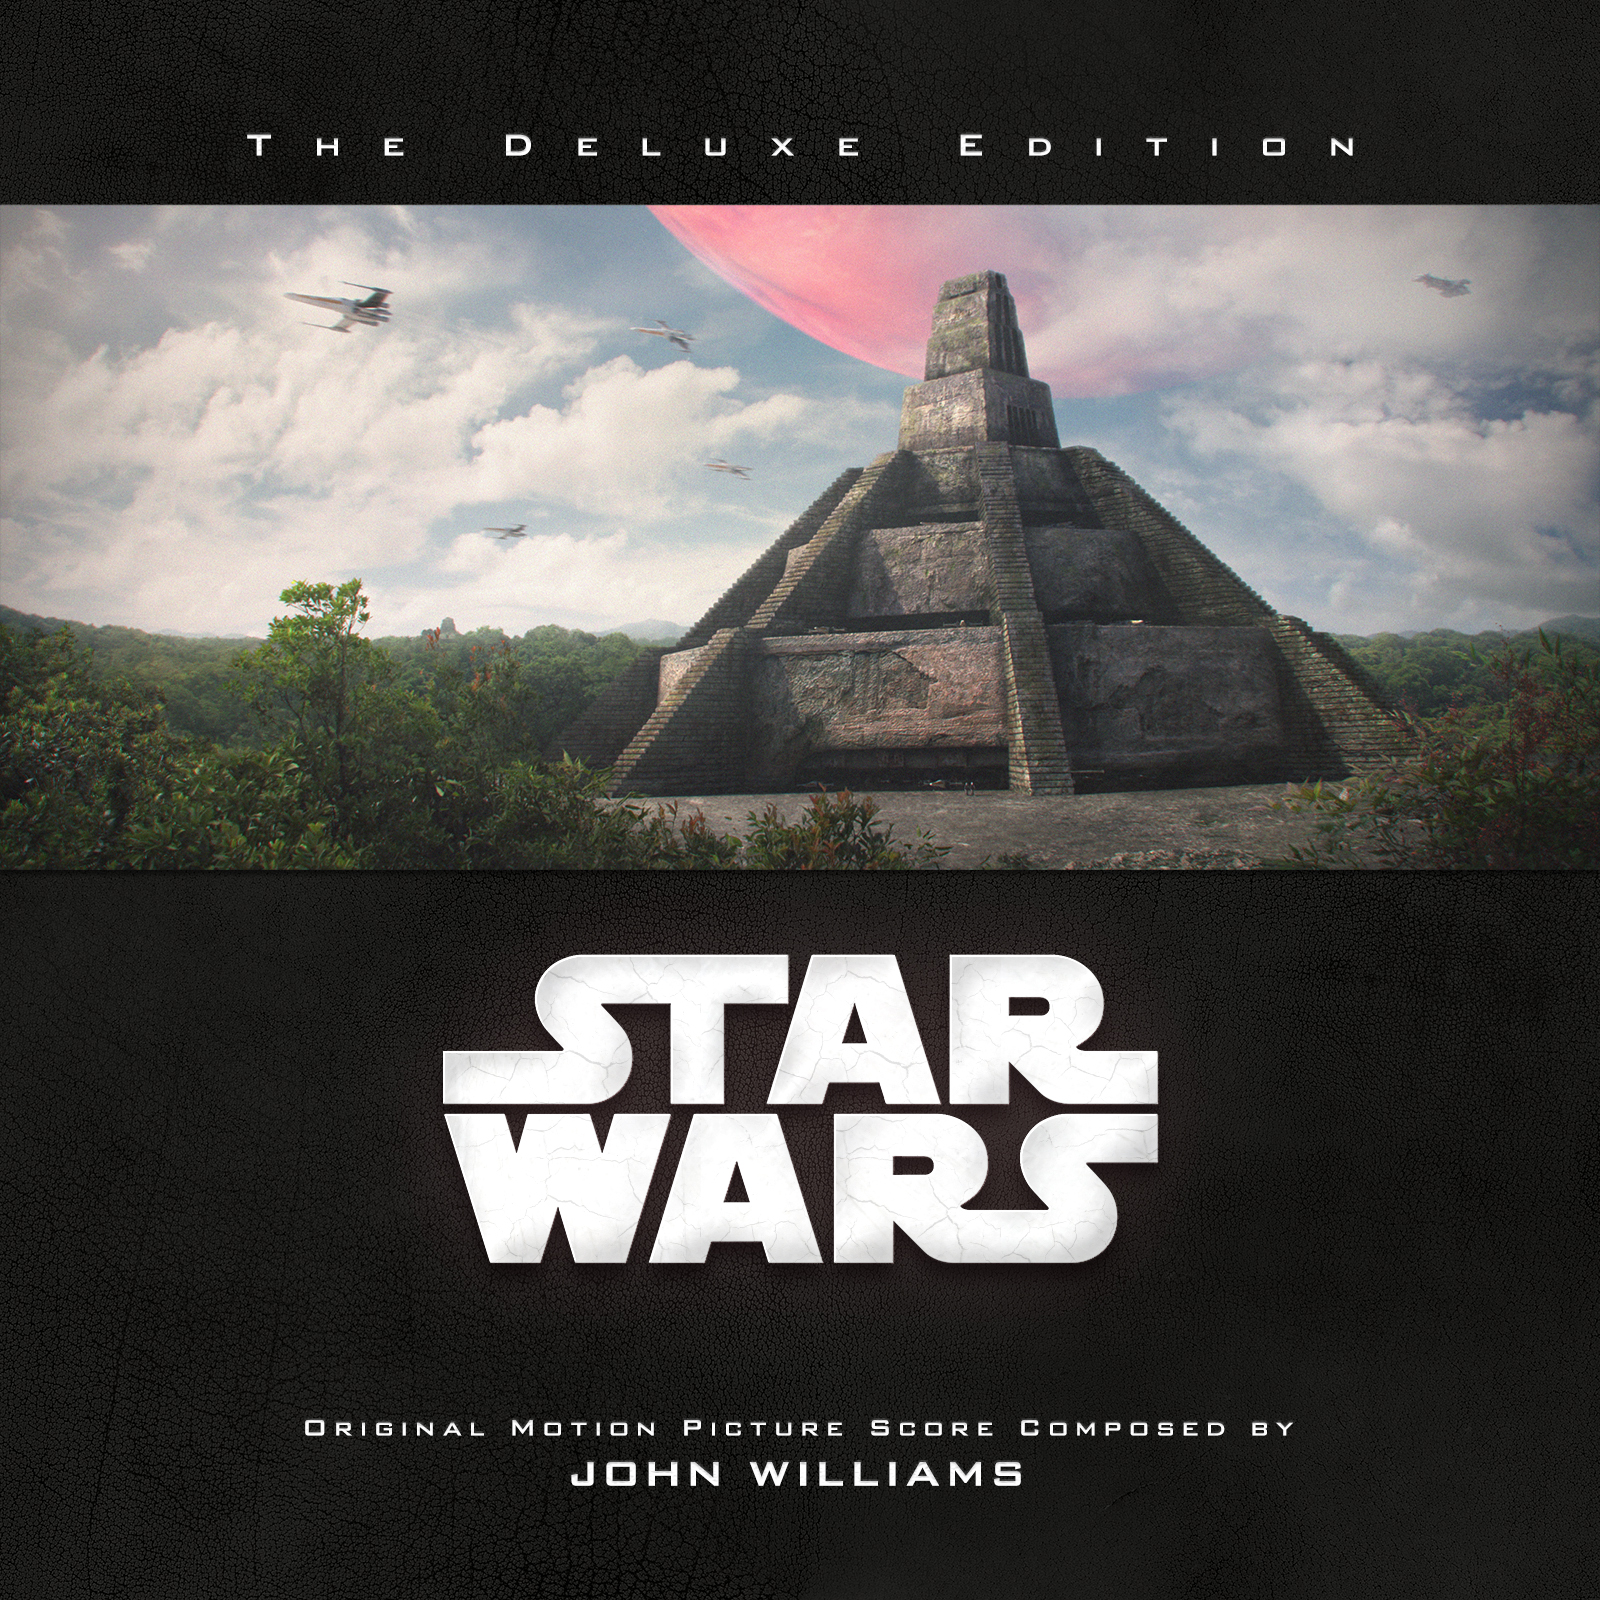 Star Wars Episode Iv A New Hope The Deluxe Edition Hqcovers